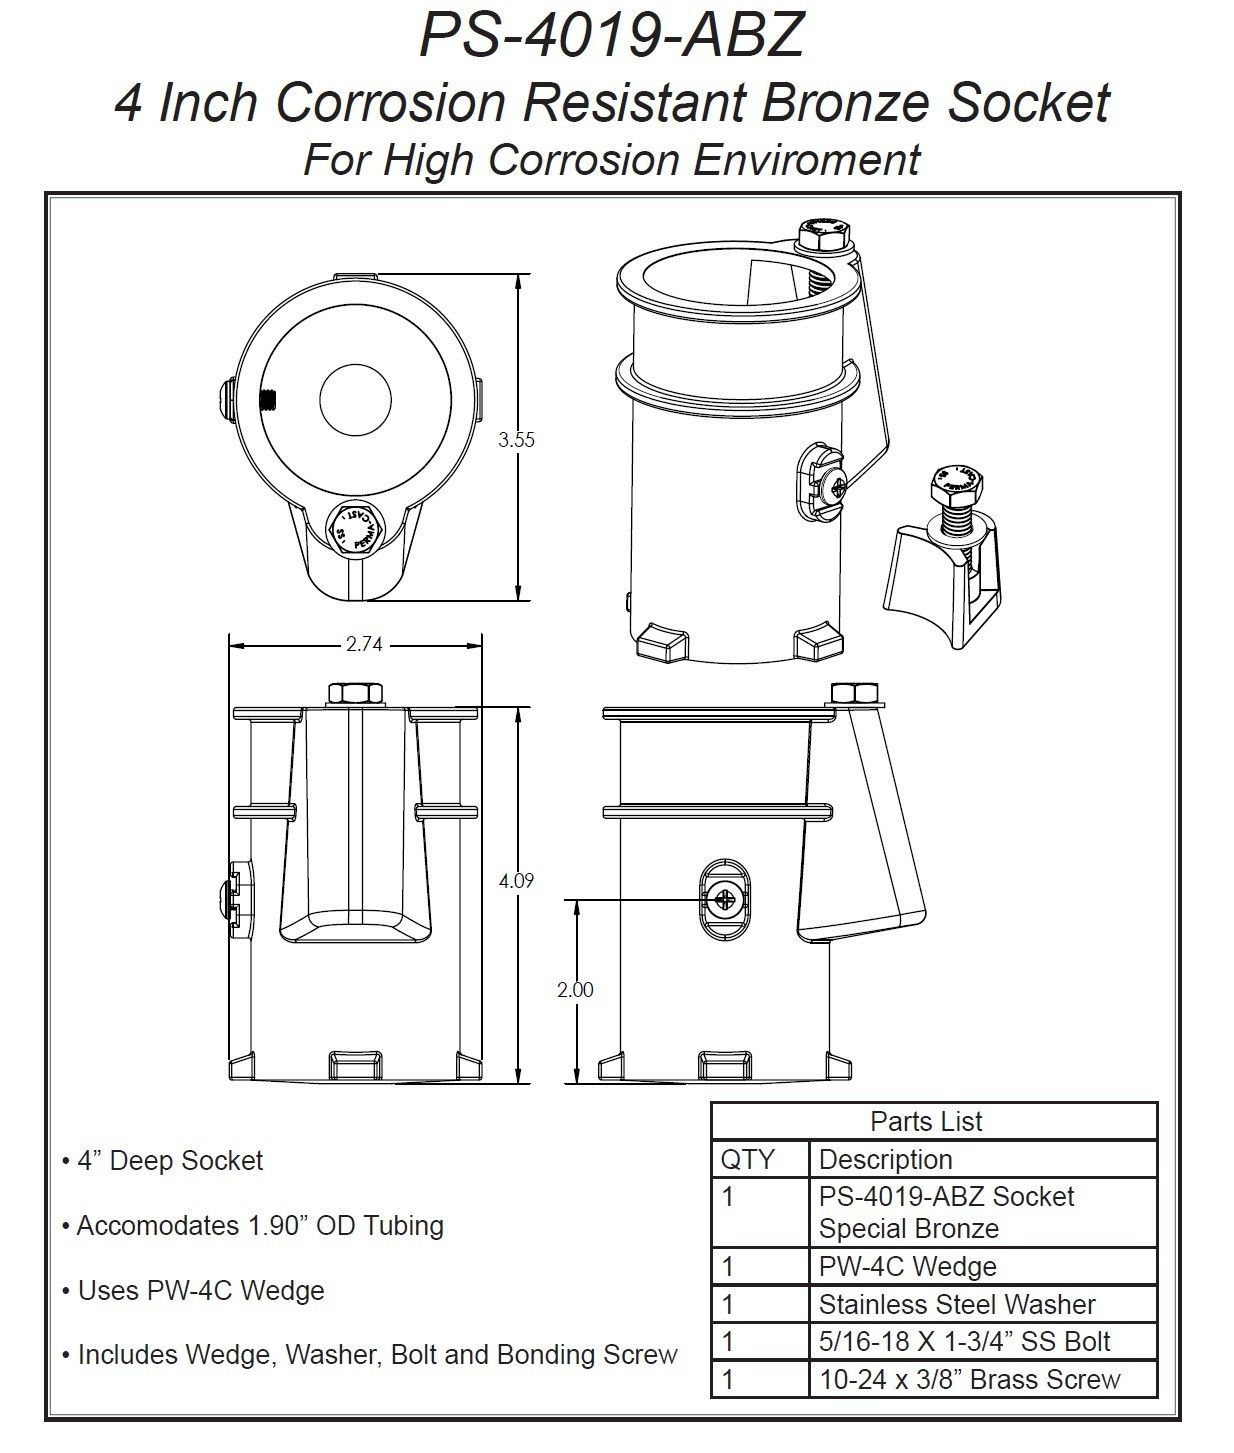 Irrigation Pump Start Relay Wiring Diagram In 2020 Pool Electrical Pool Paint Spa Parts